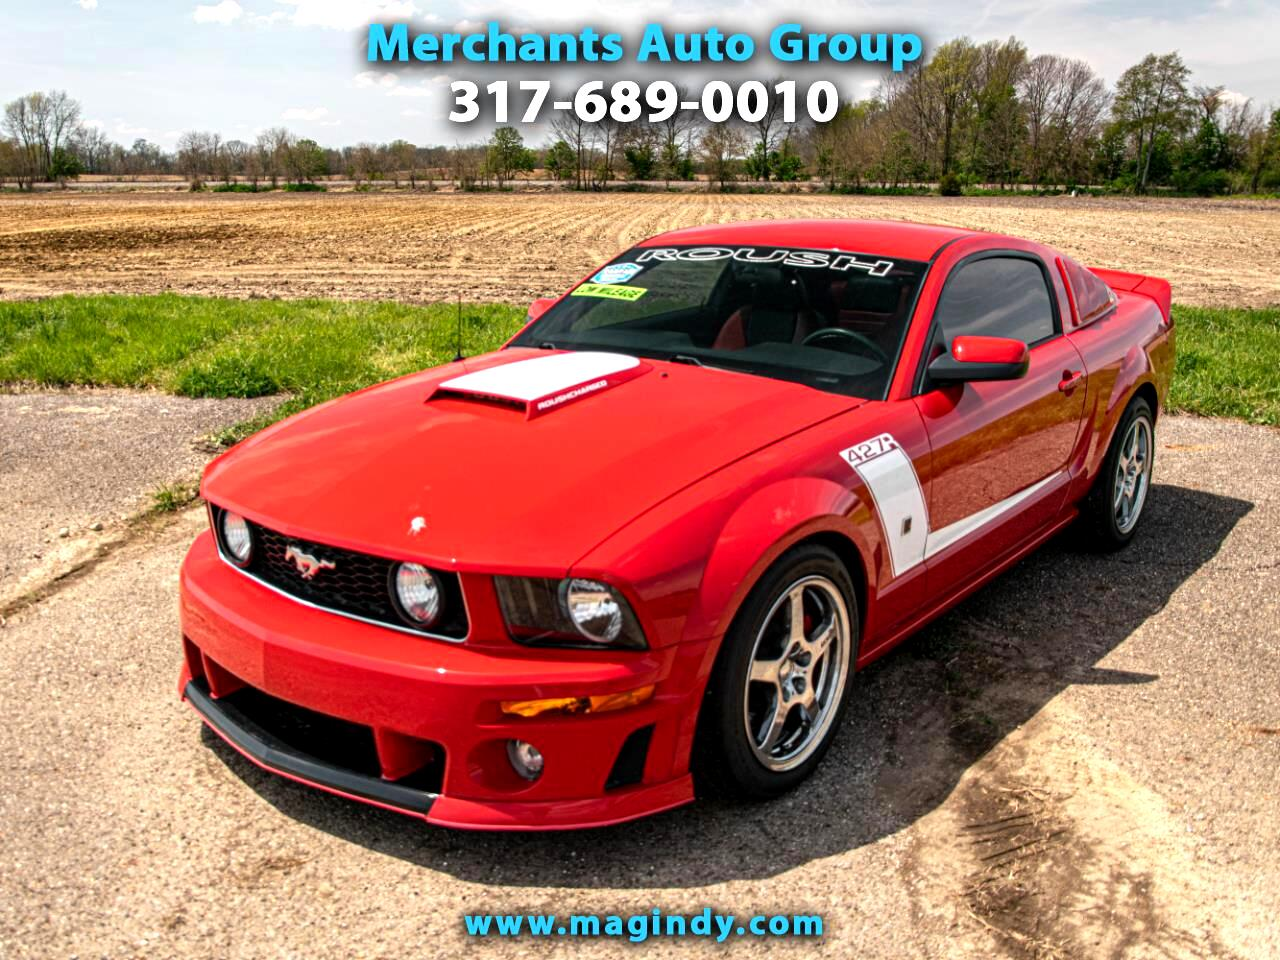 Ford Mustang GT Premium Coupe 2007